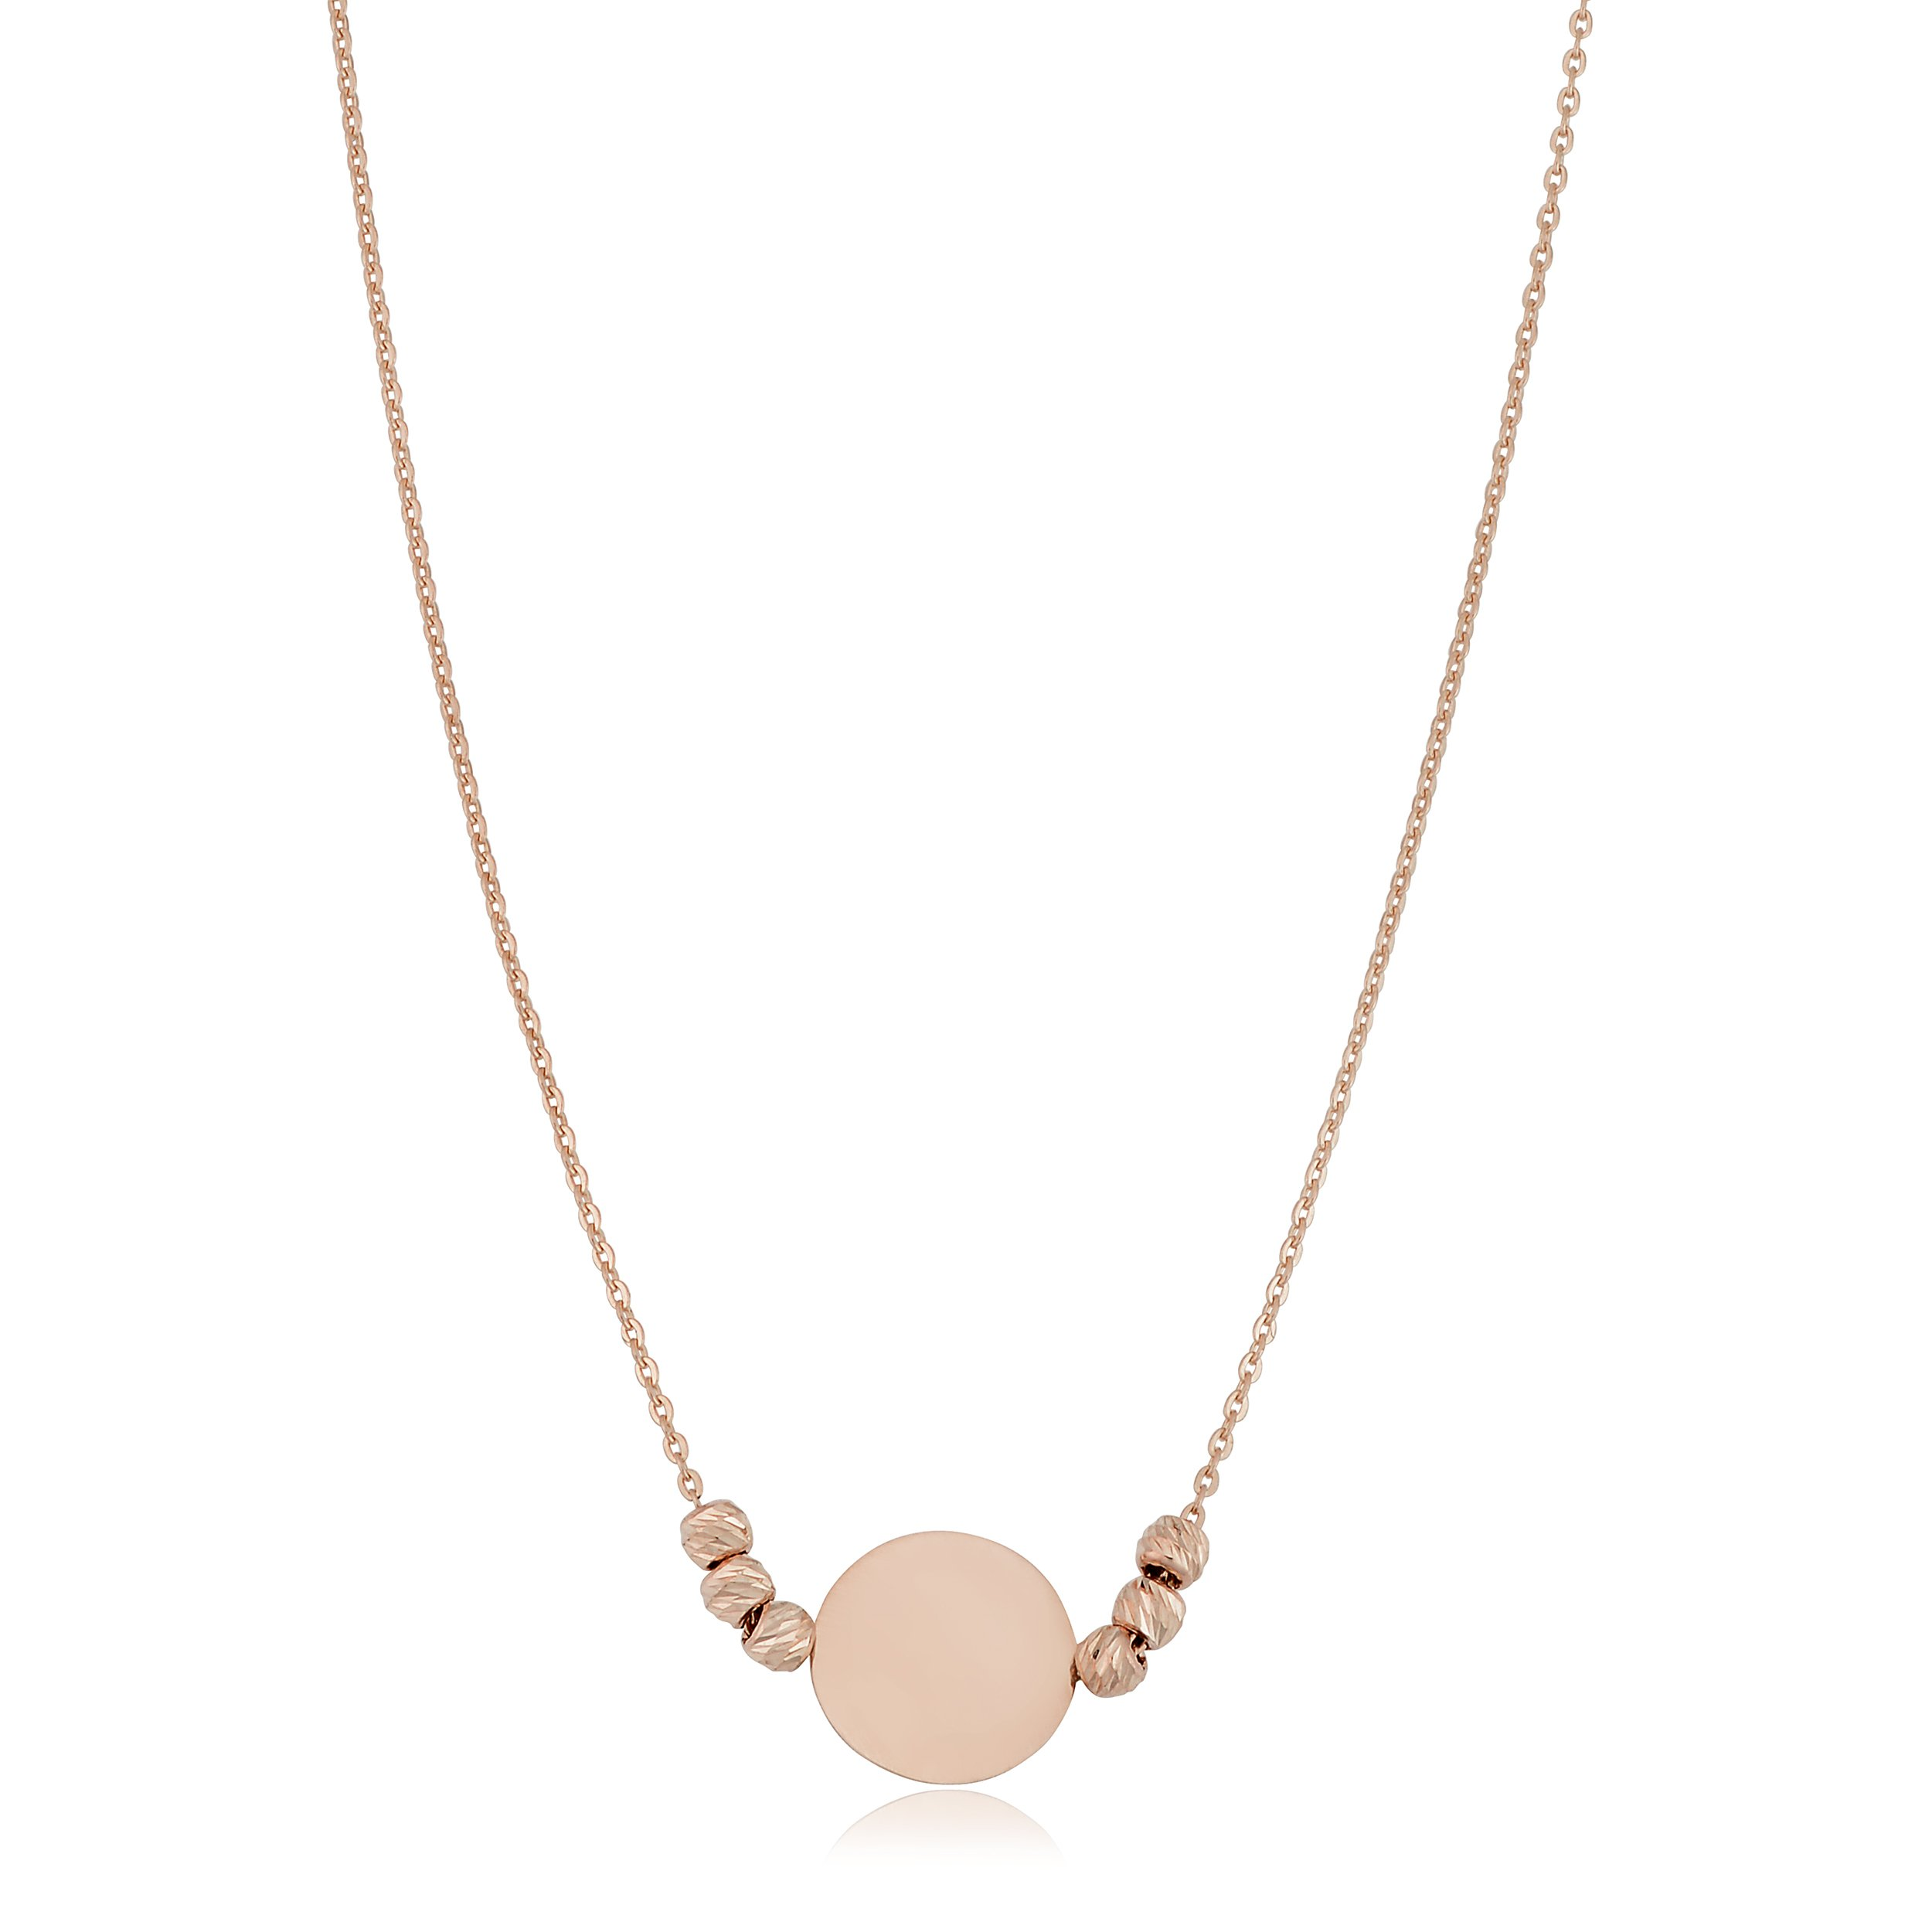 14k Rose Gold Round Disc And Diamond-cut Bead Adjustable Length Necklace (fits 17'' or 18'')